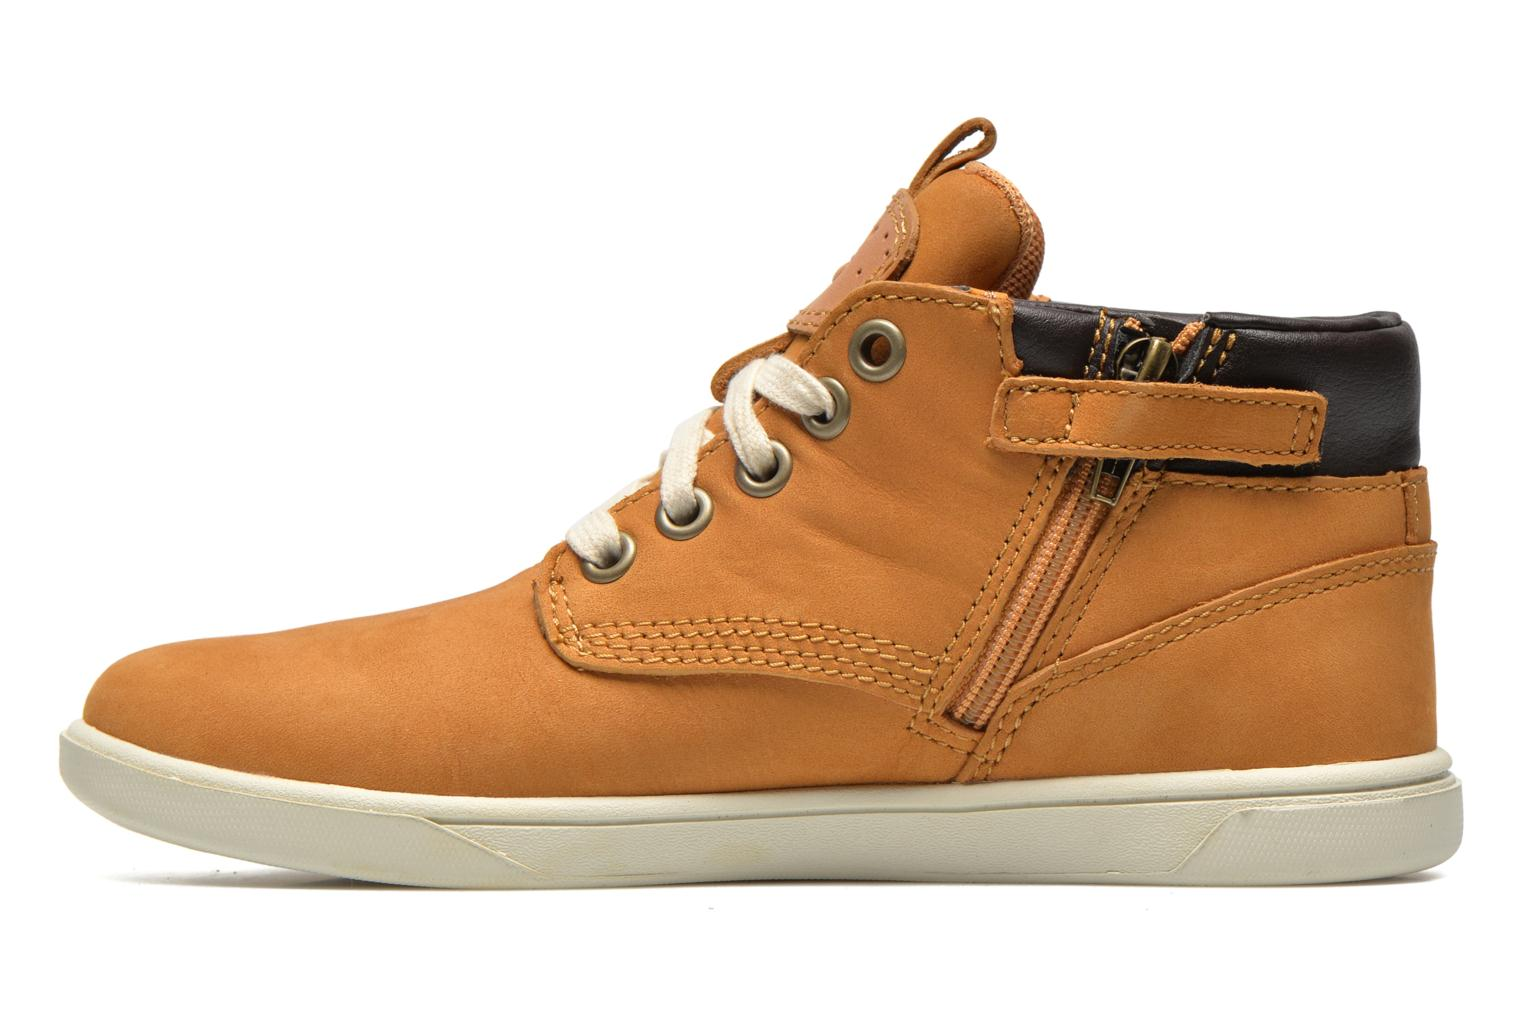 Groveton Leather Chukka Wheat Nubuck